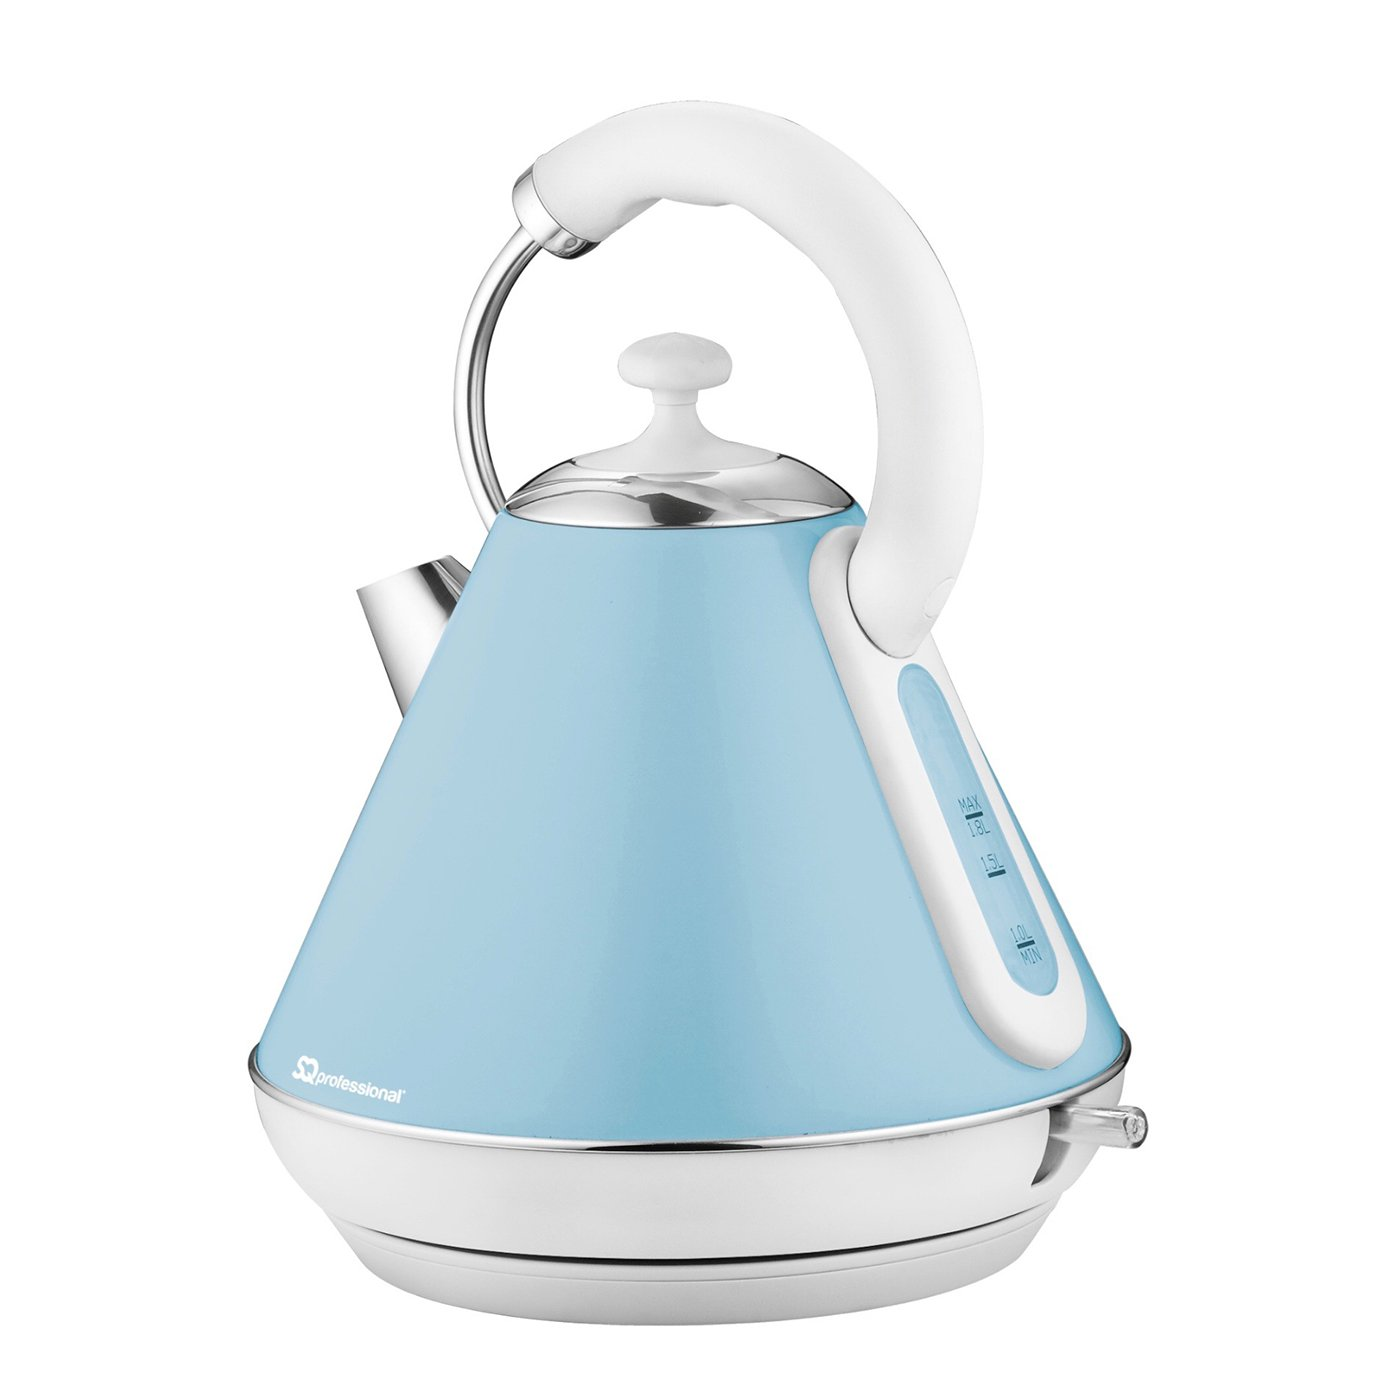 Dainty Legacy Electric Kettle 2200W 1.8L, Skyline SQ Professional Others